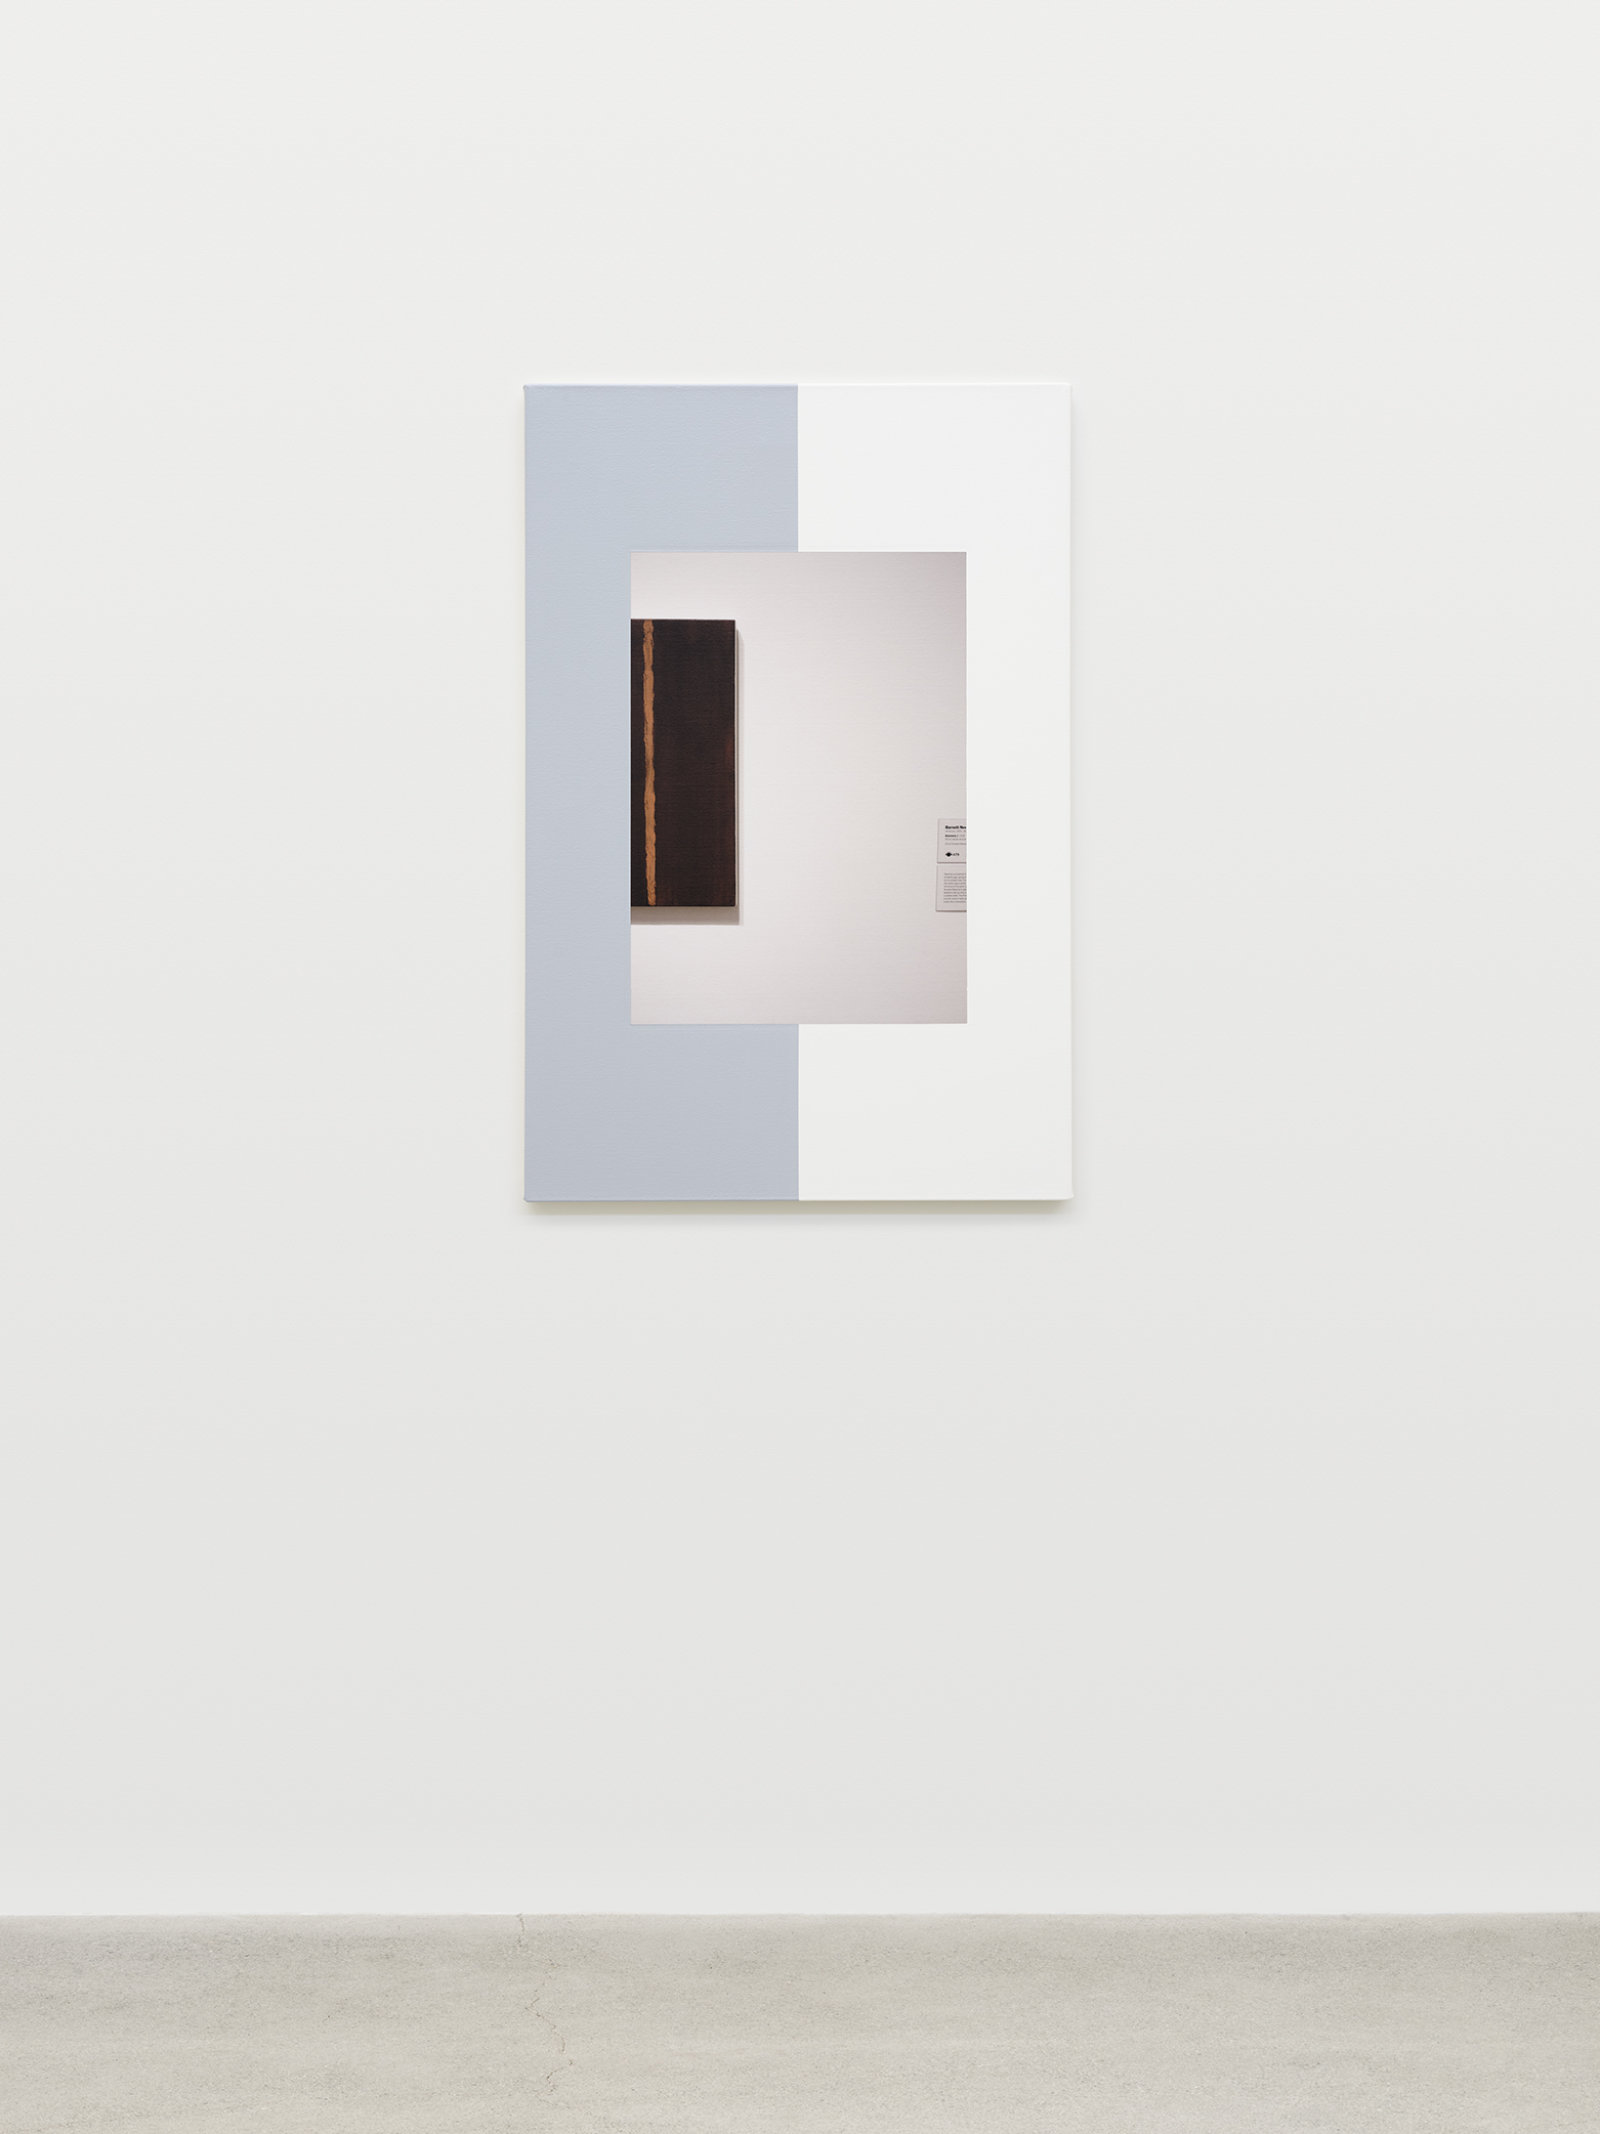 Ian Wallace, Abstract Composition (with Onement), 2011, photolaminate with acrylic on canvas, 36 x 24 in. (91 x 61 cm)